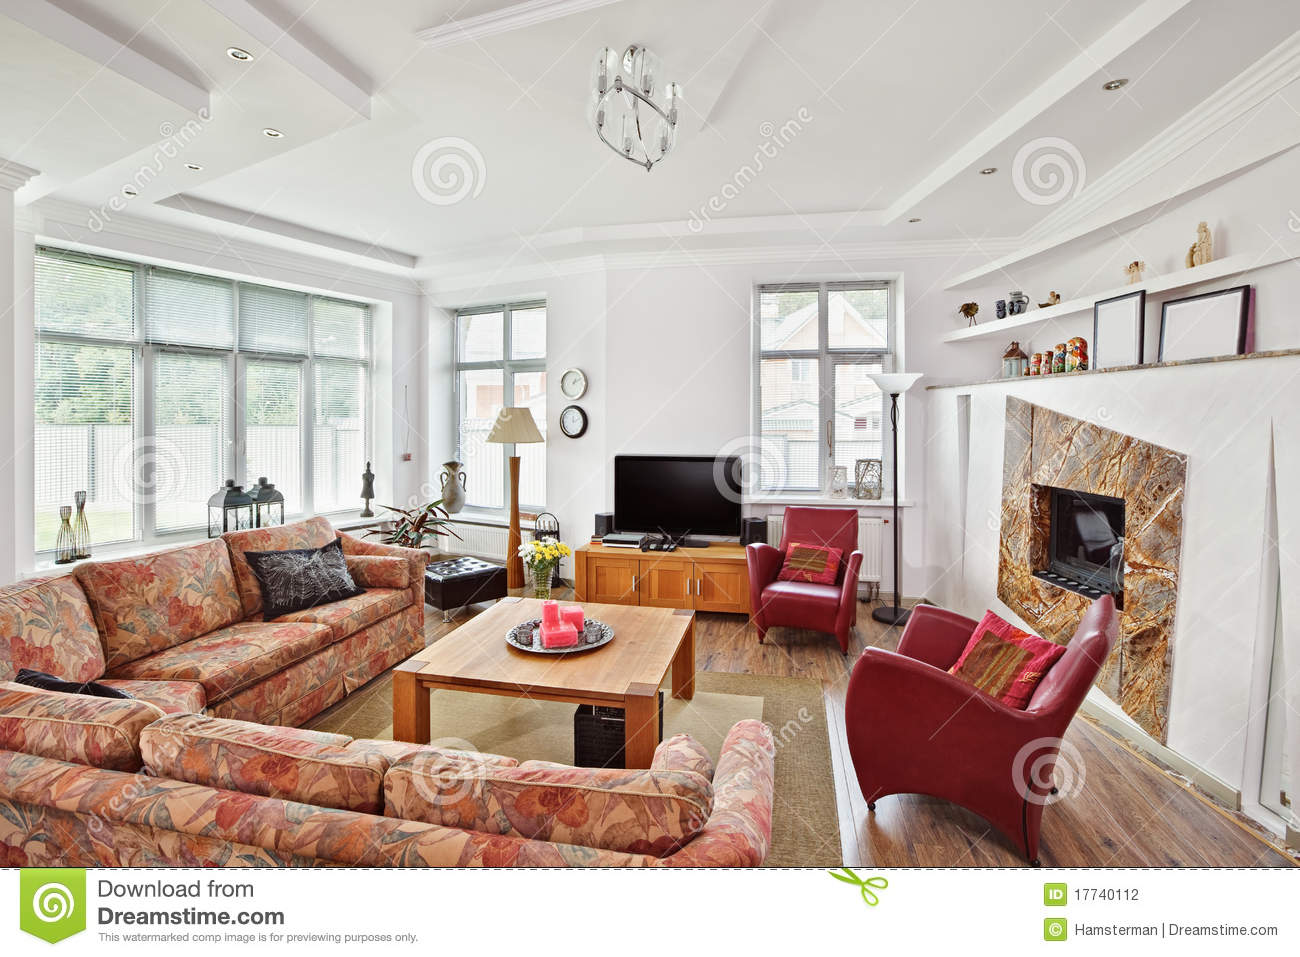 Modern art deco style drawing room interior stock photo for Drawing room interior